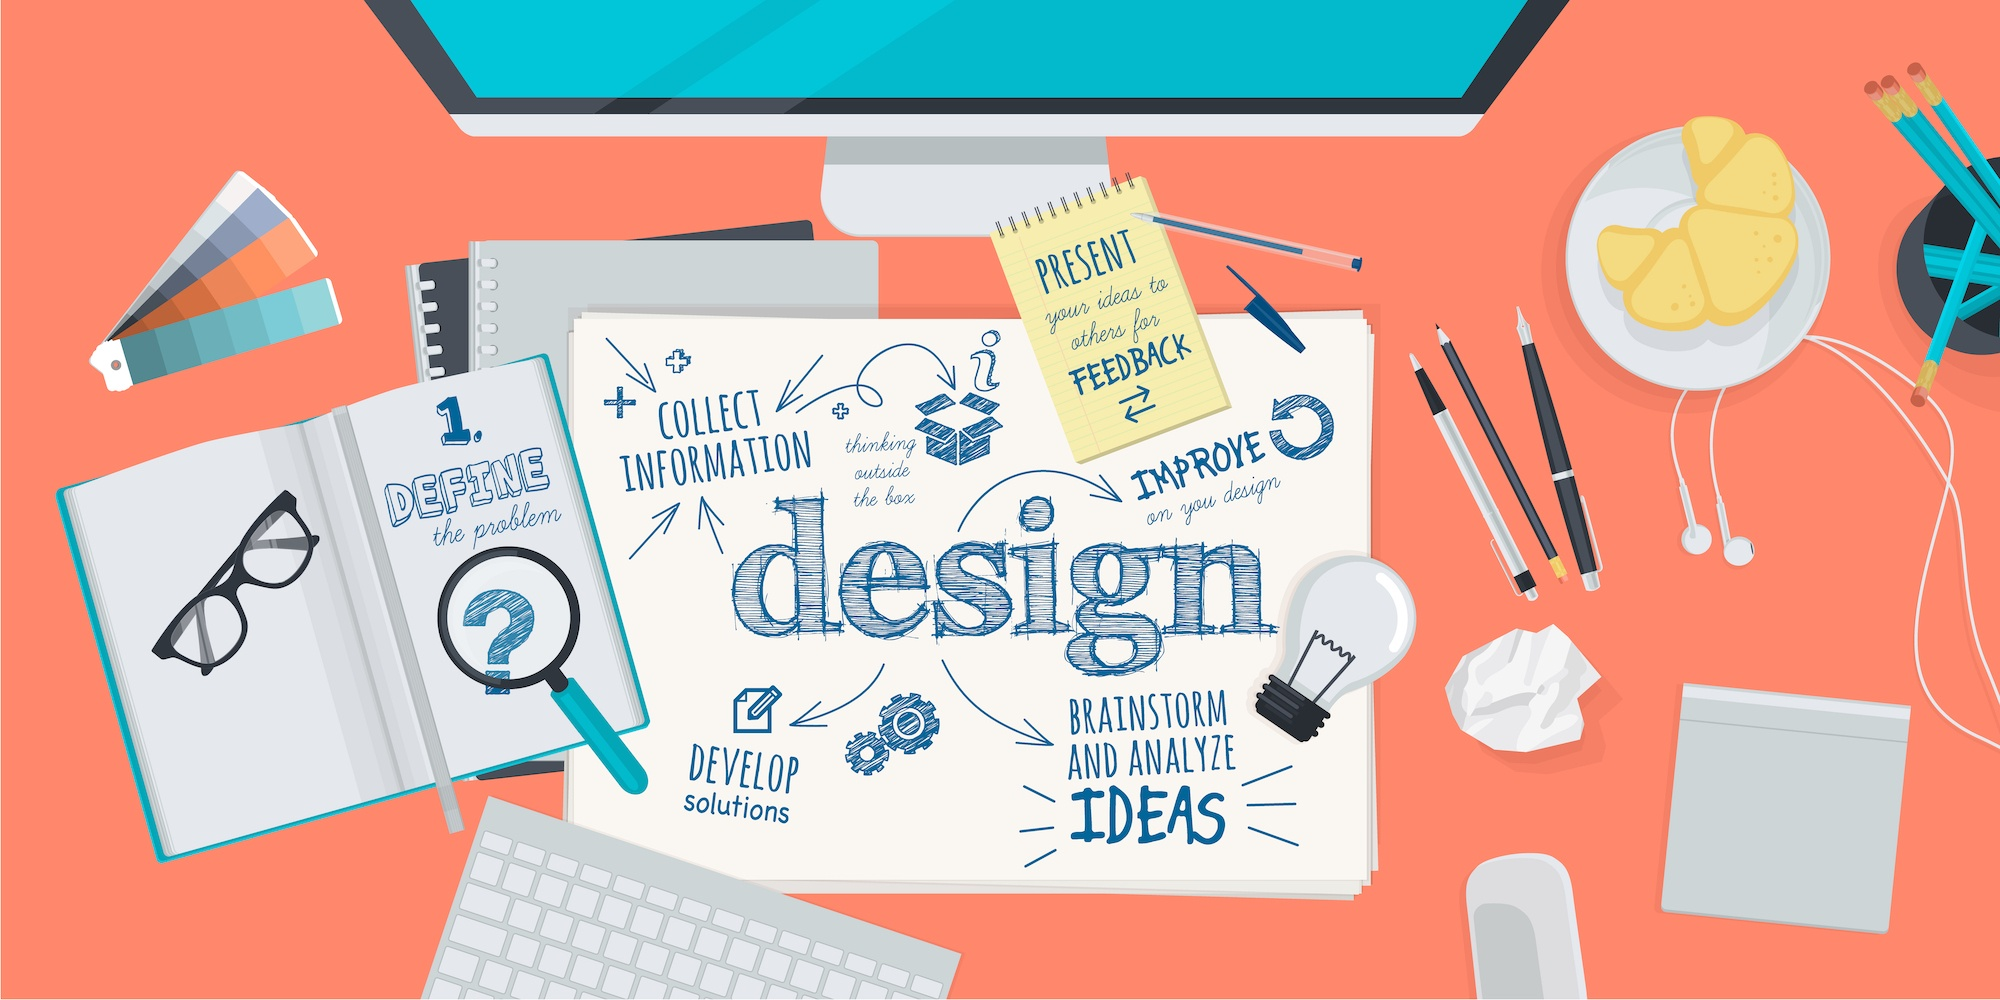 25 Design Tools, Apps, & Resources to Seriously Upgrade Your Visual Appeal